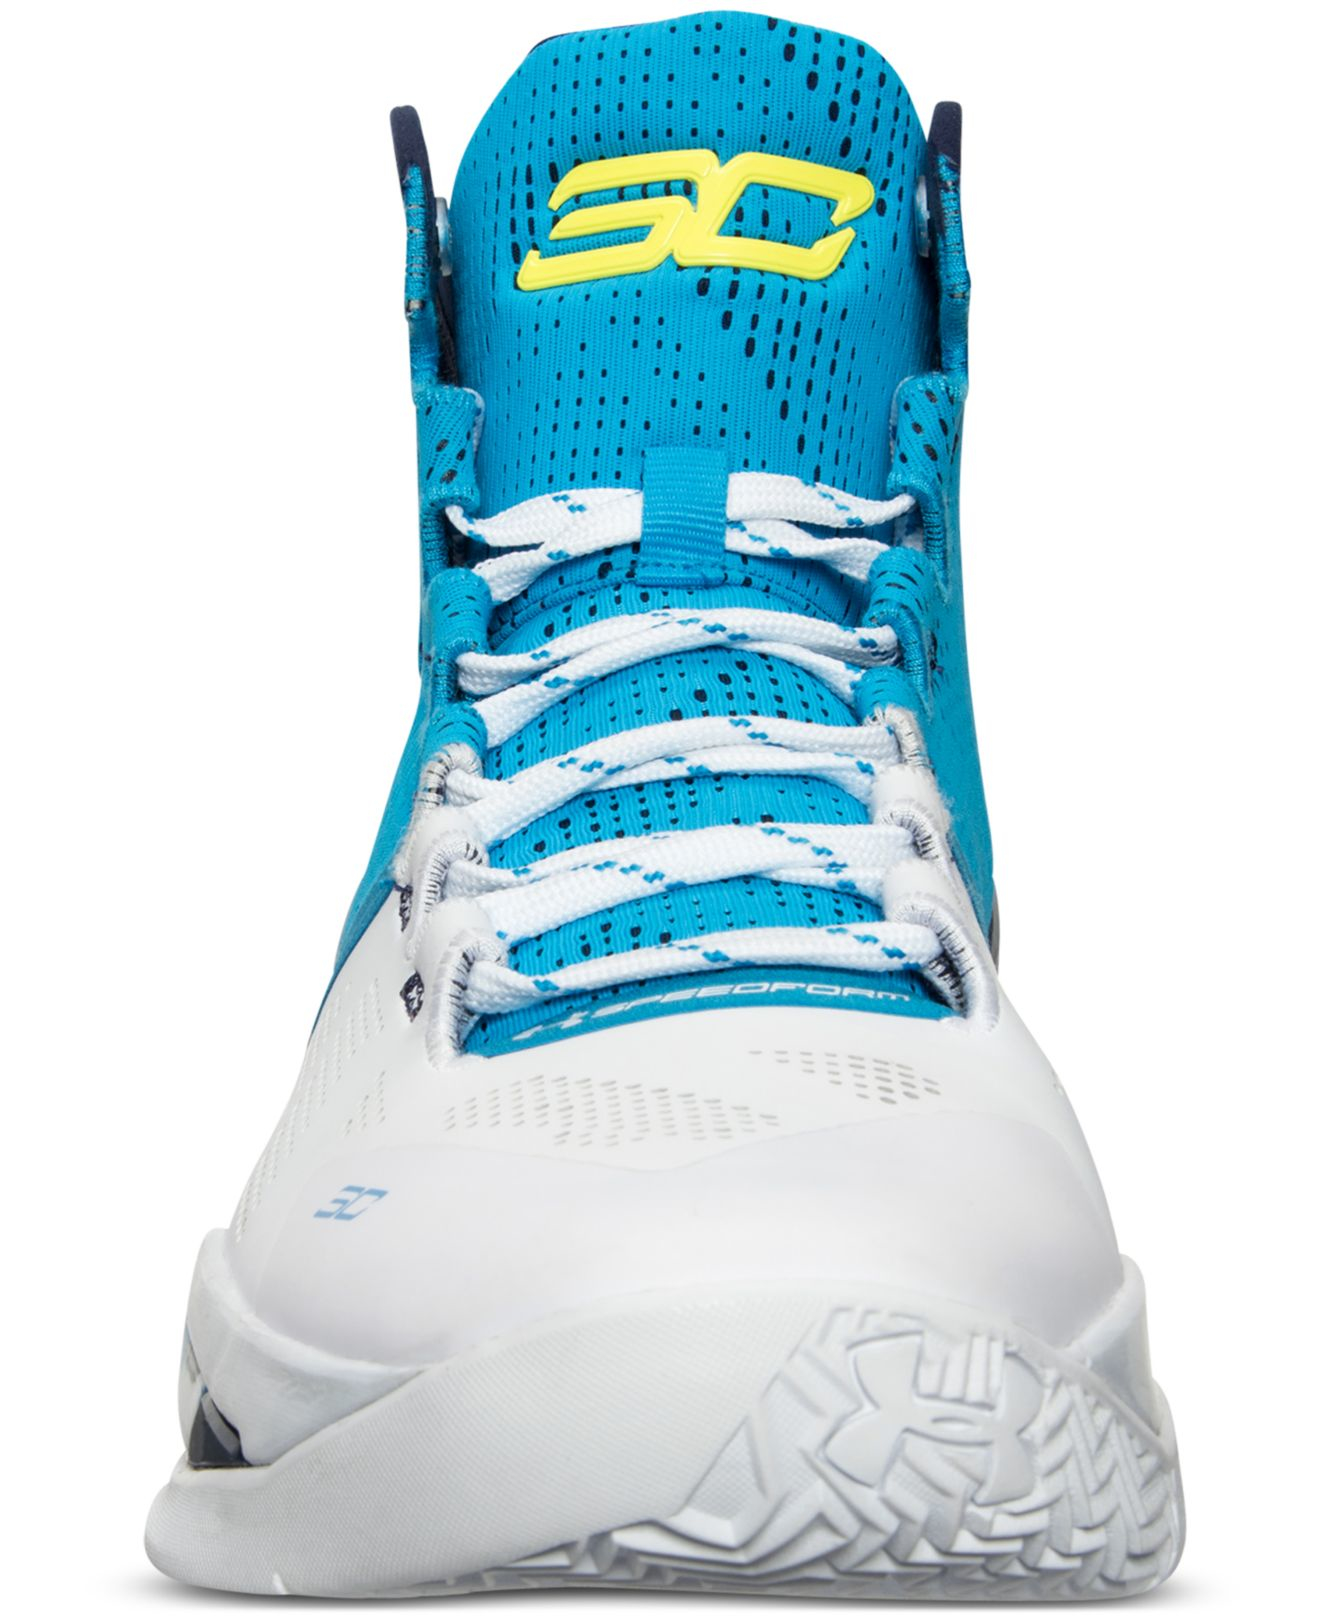 b06797cfb0c7 ... coupon code for lyst under armour mens curry two basketball sneakers  from finish line in blue